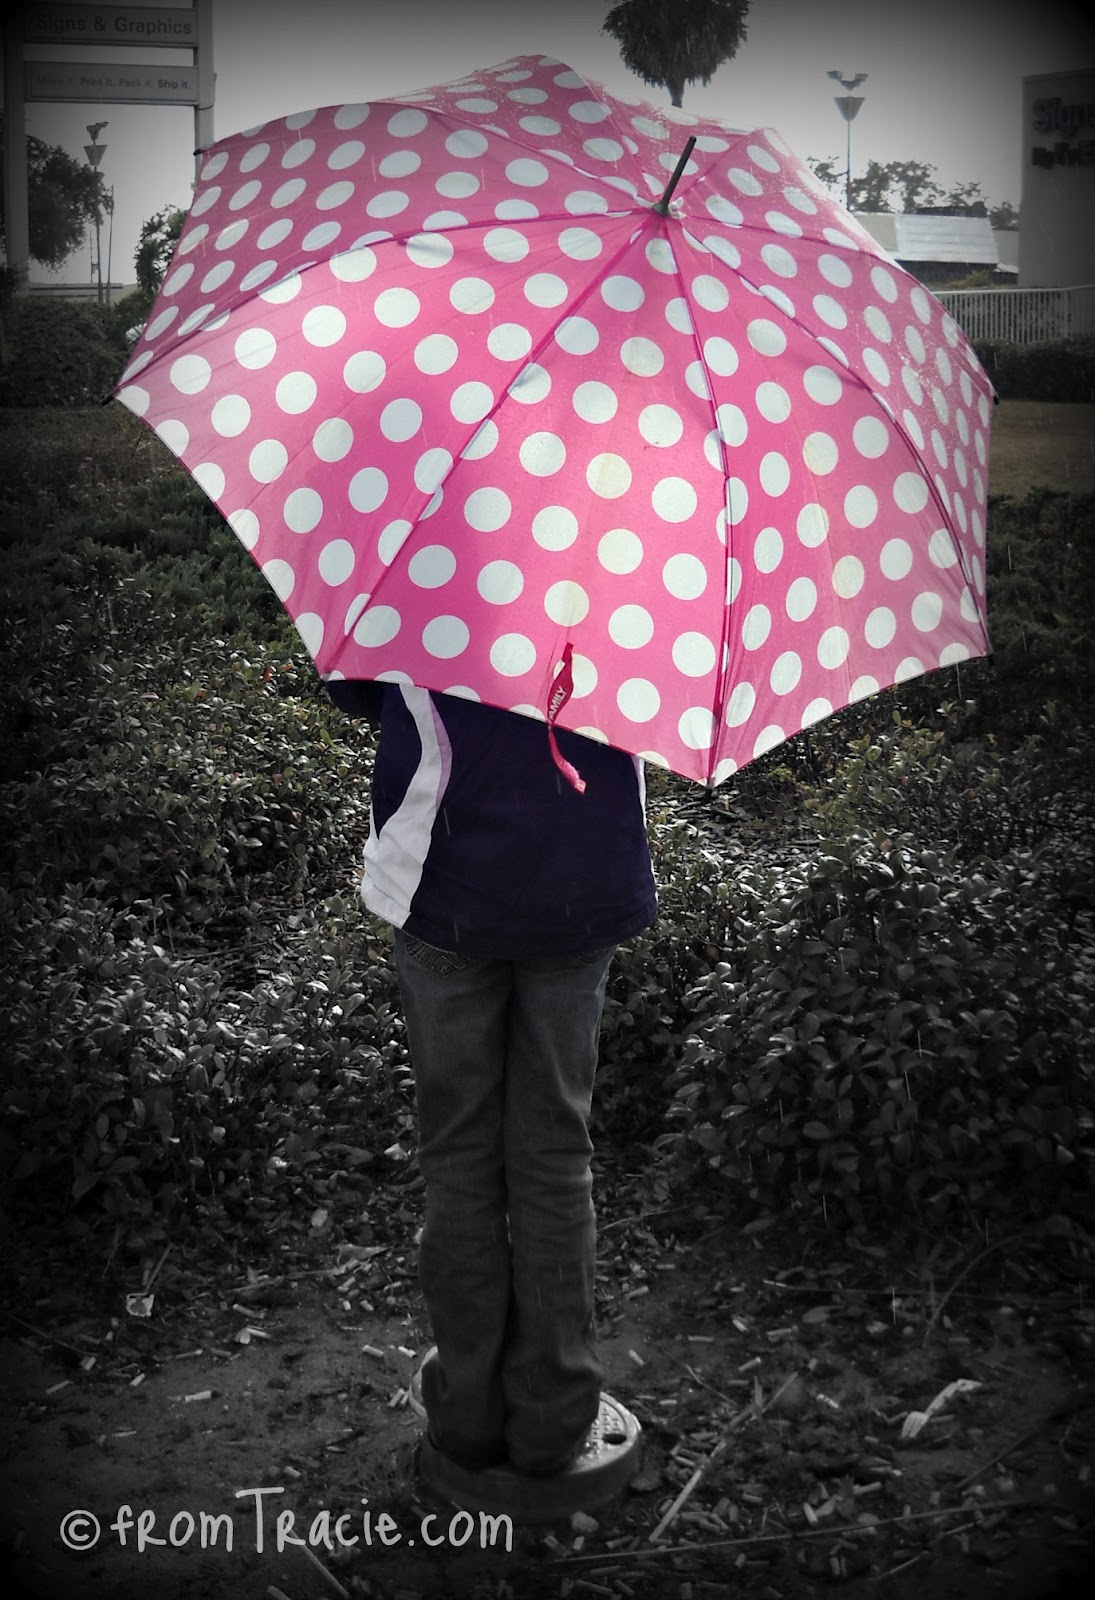 Girl With Pink Polka Dot Umbrella